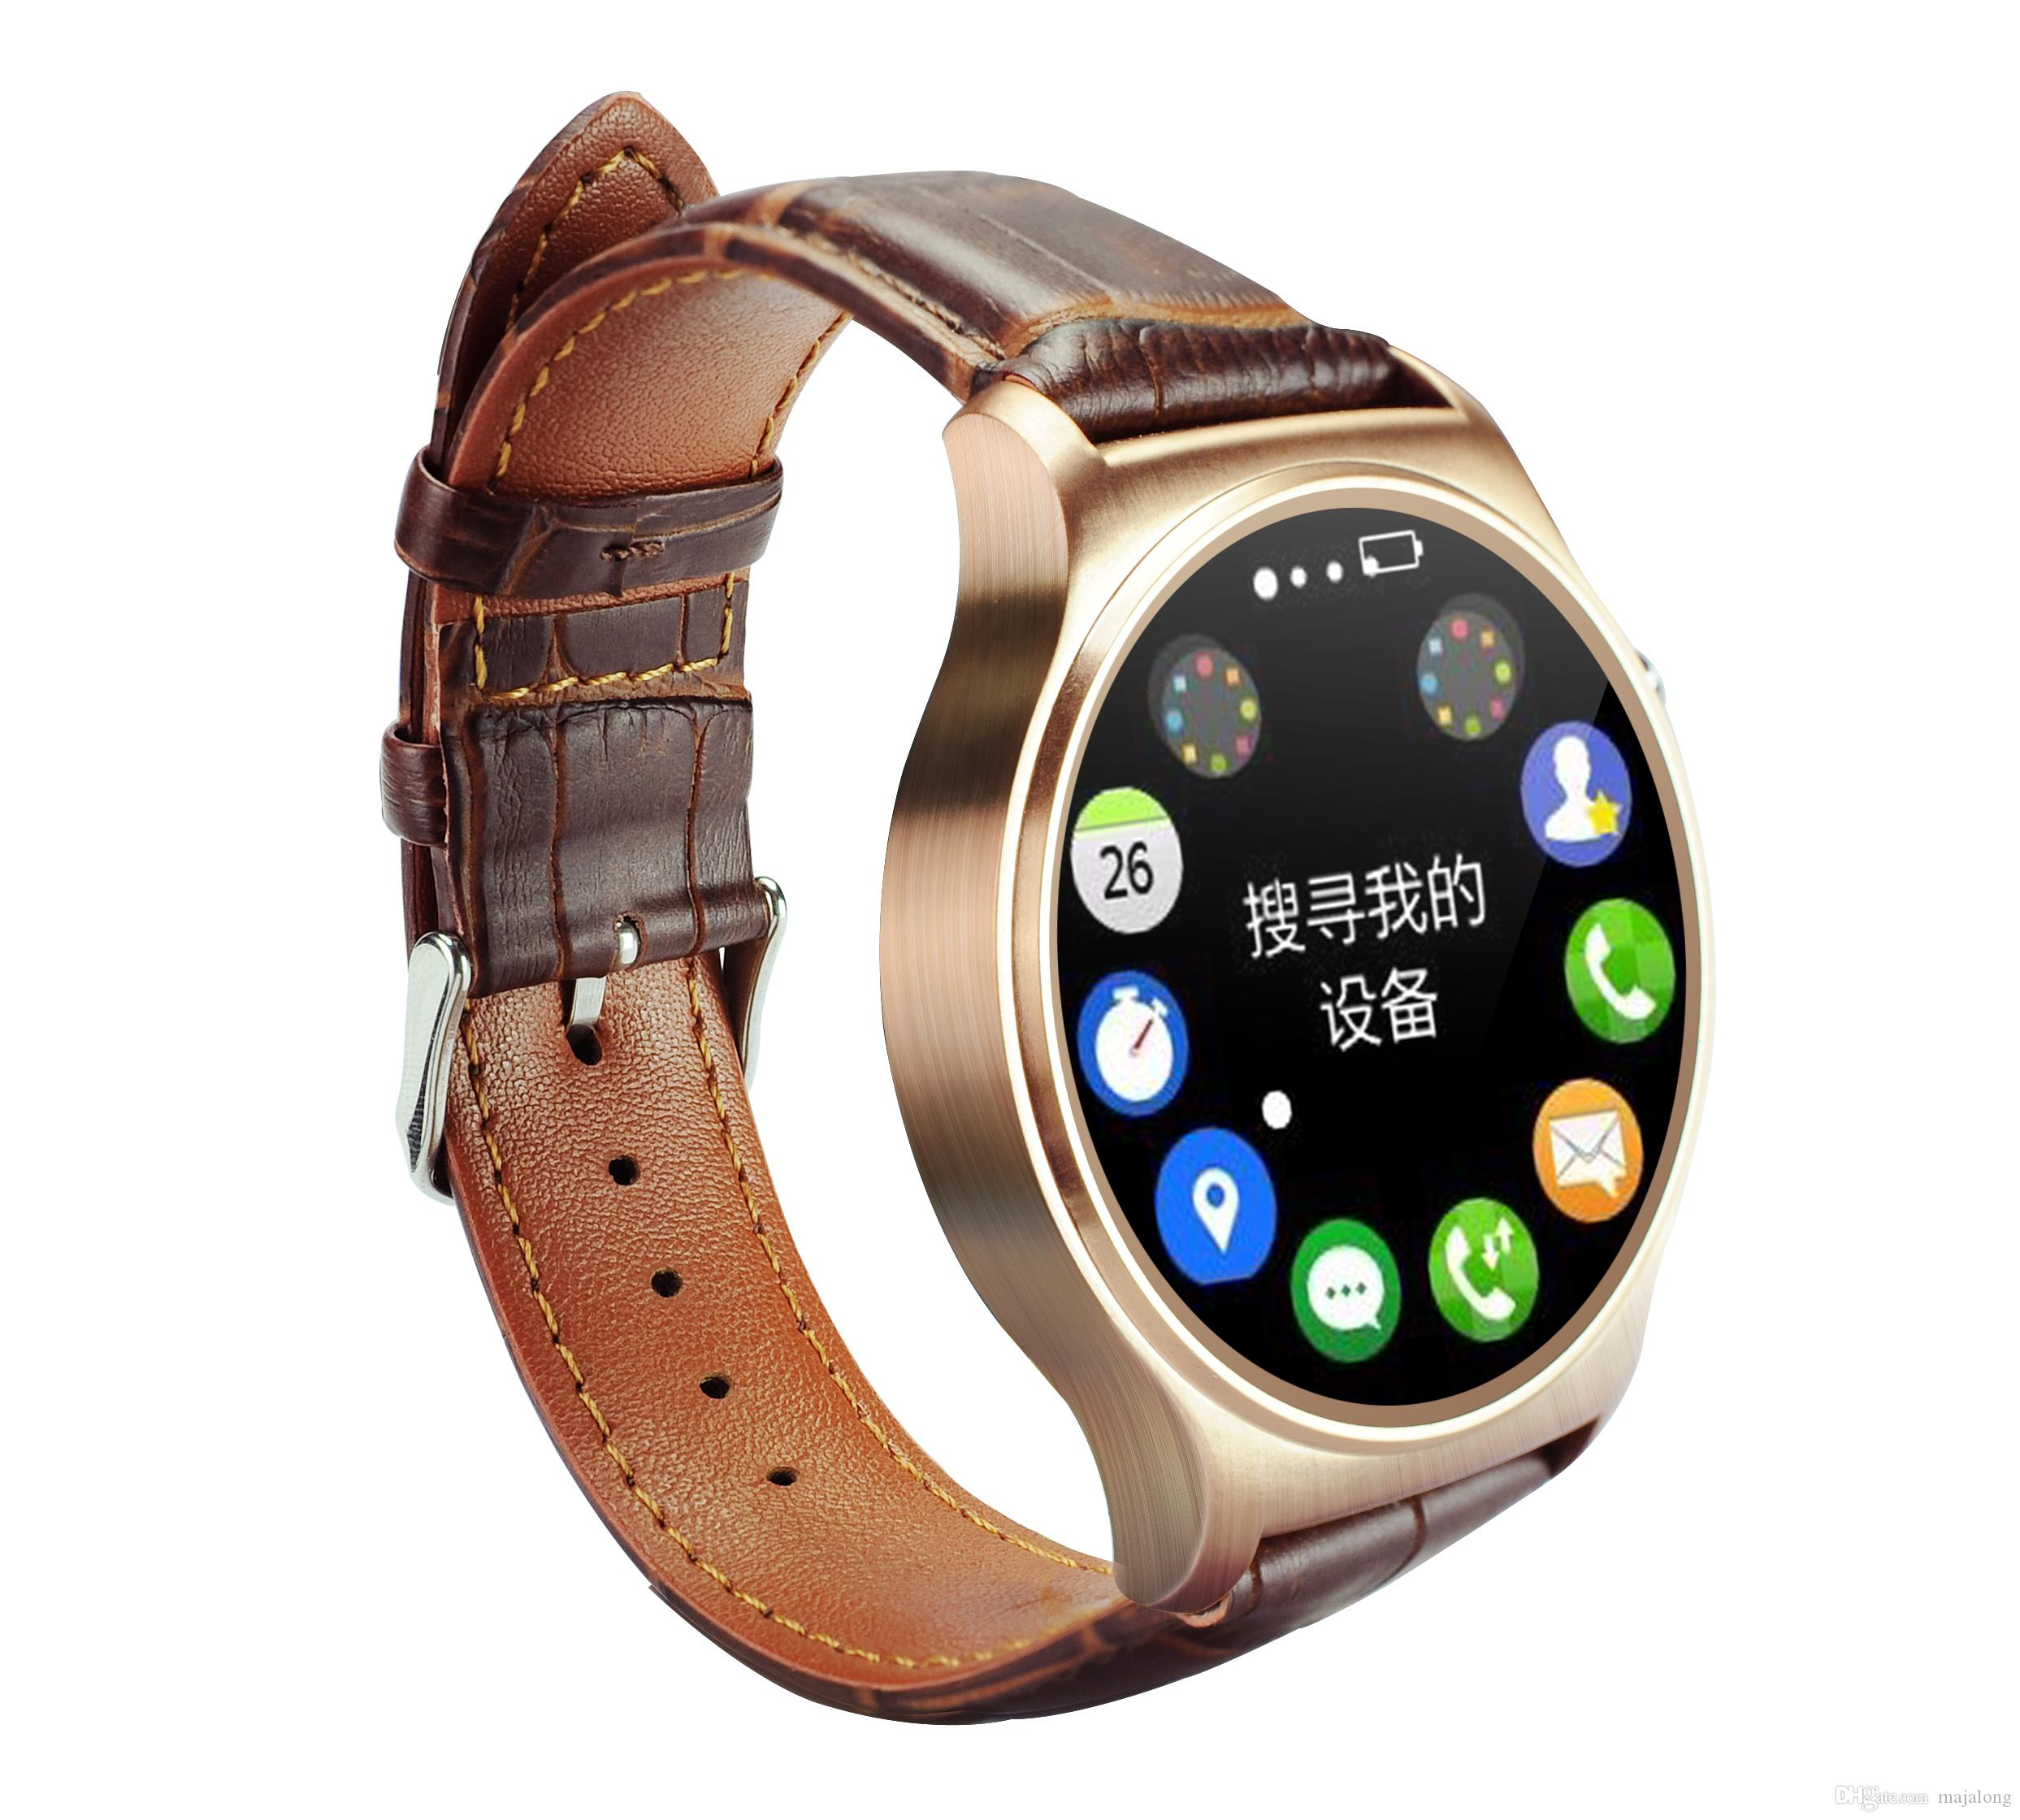 sim strap phones bluetooth camera iwatch for smartwatch leather slot original tf with watches card product android smart support